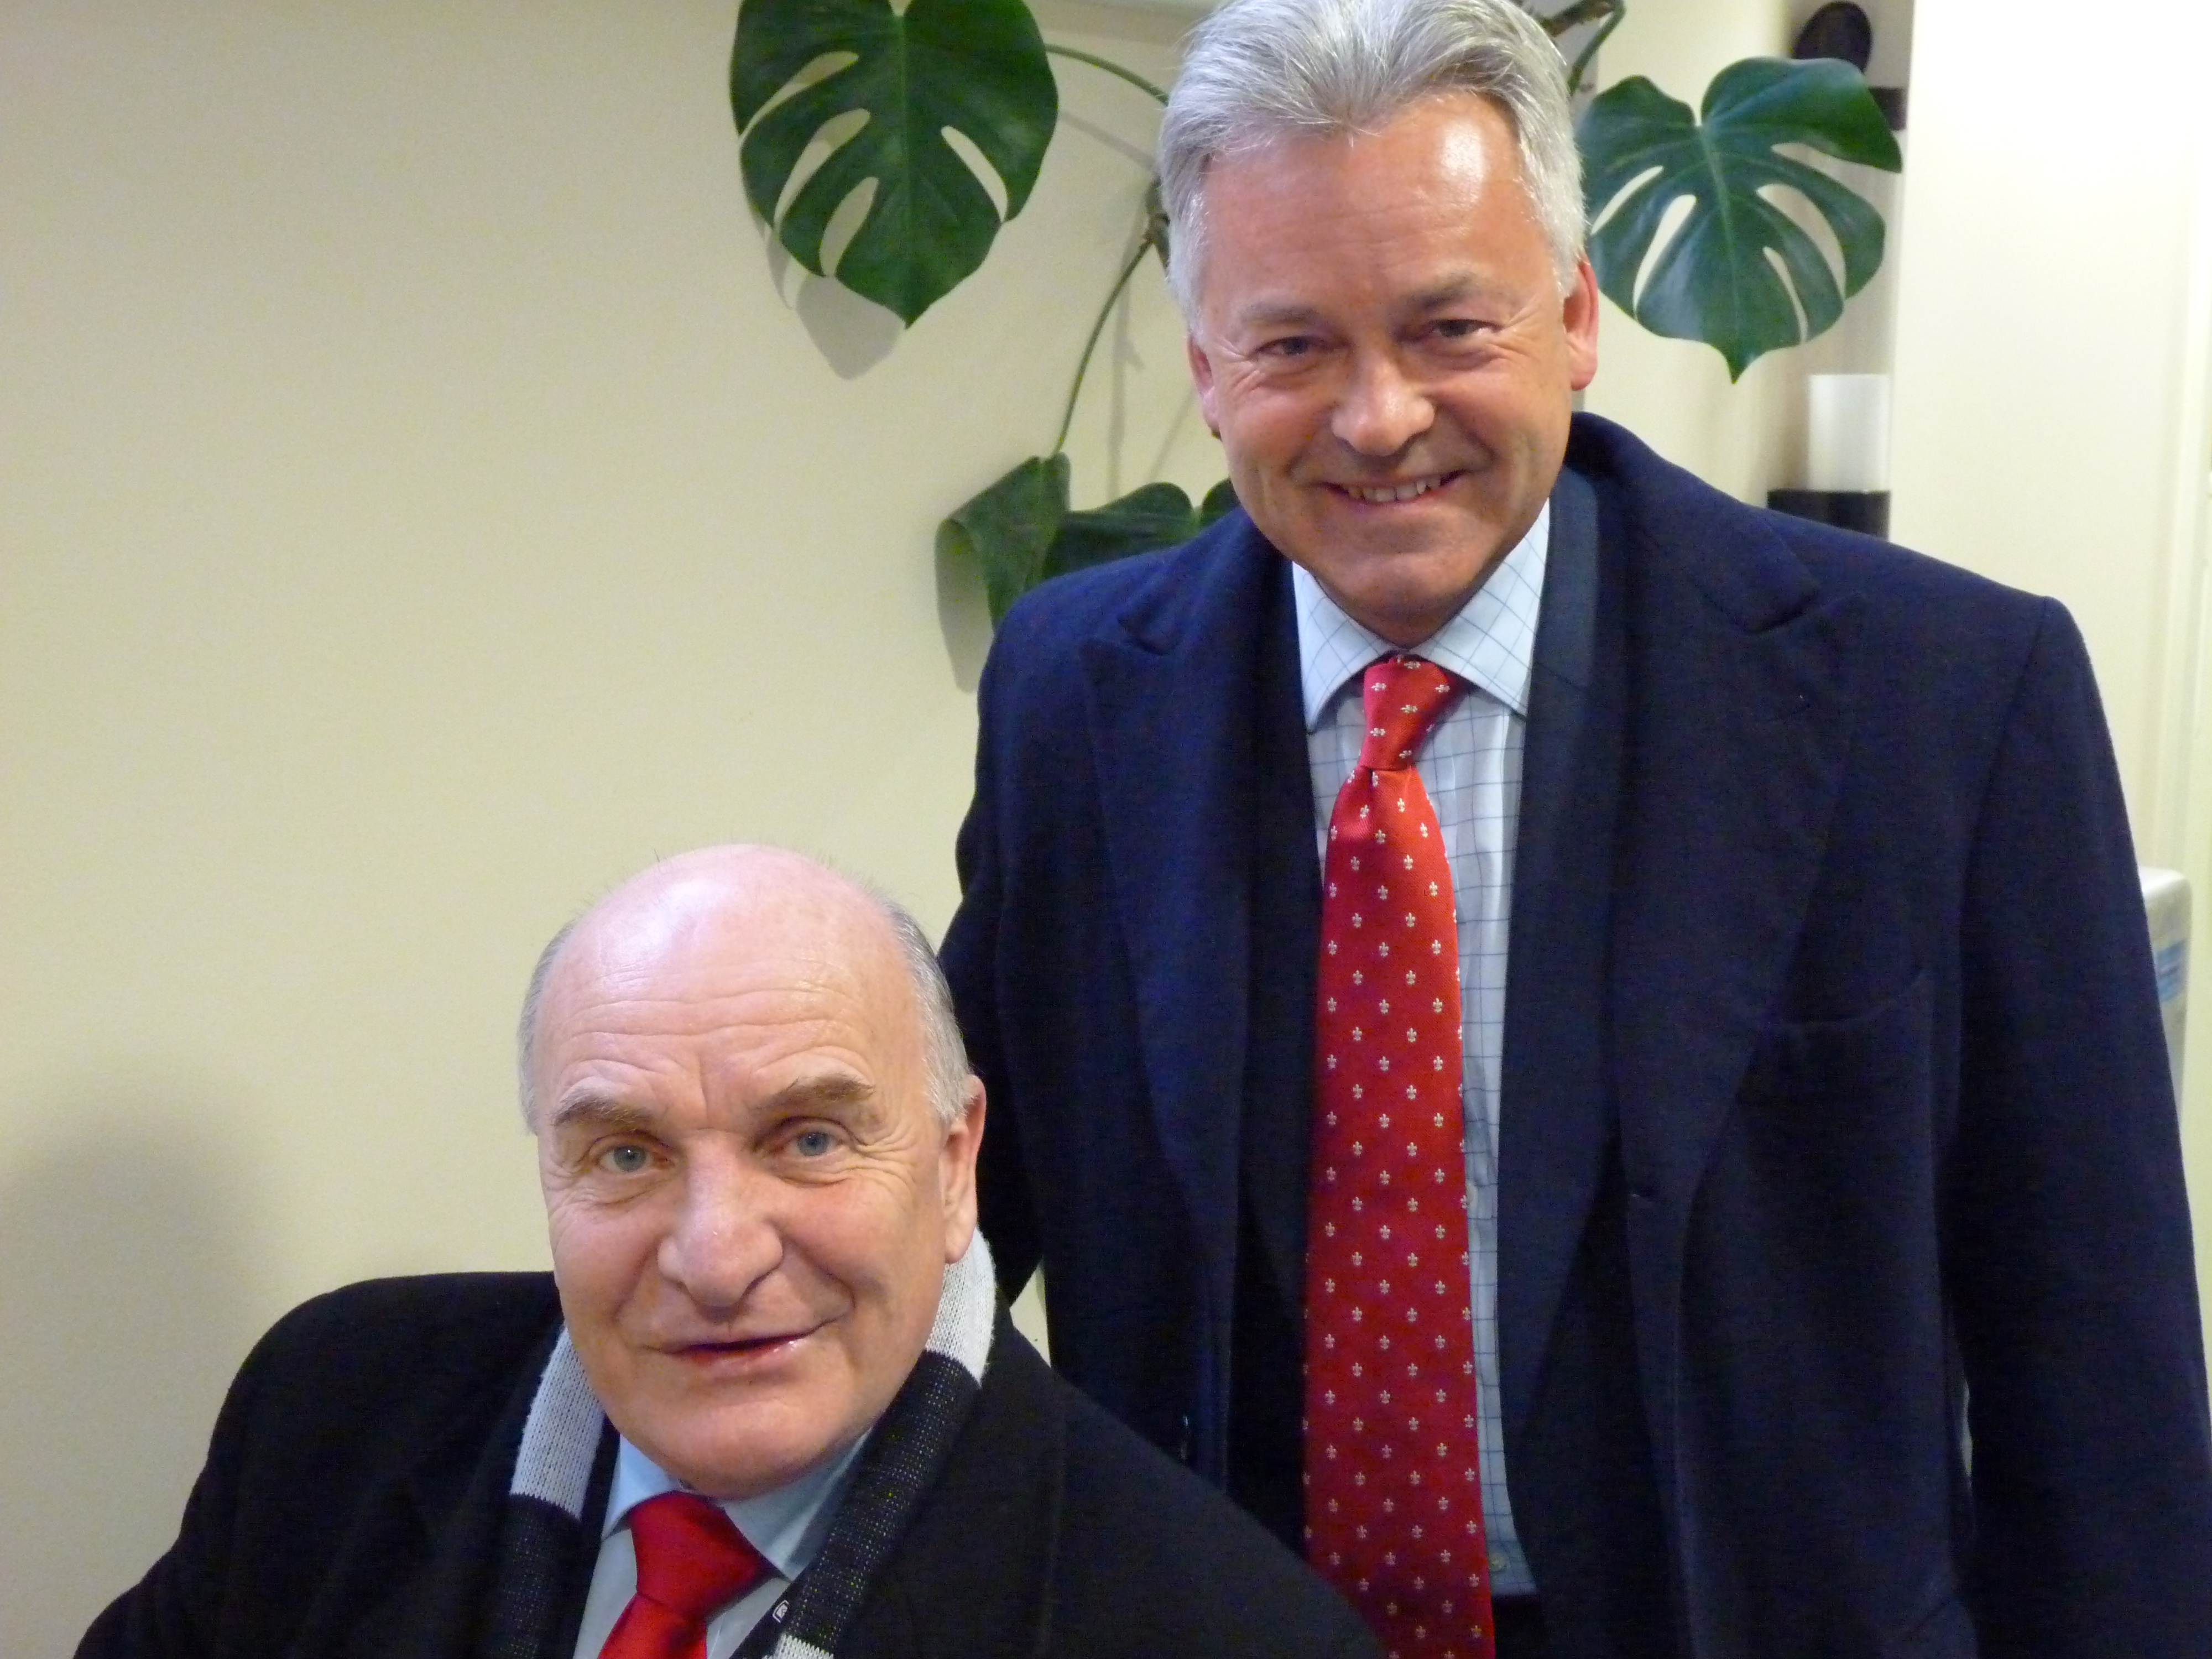 MPs Stephen Pound and Alan Duncan